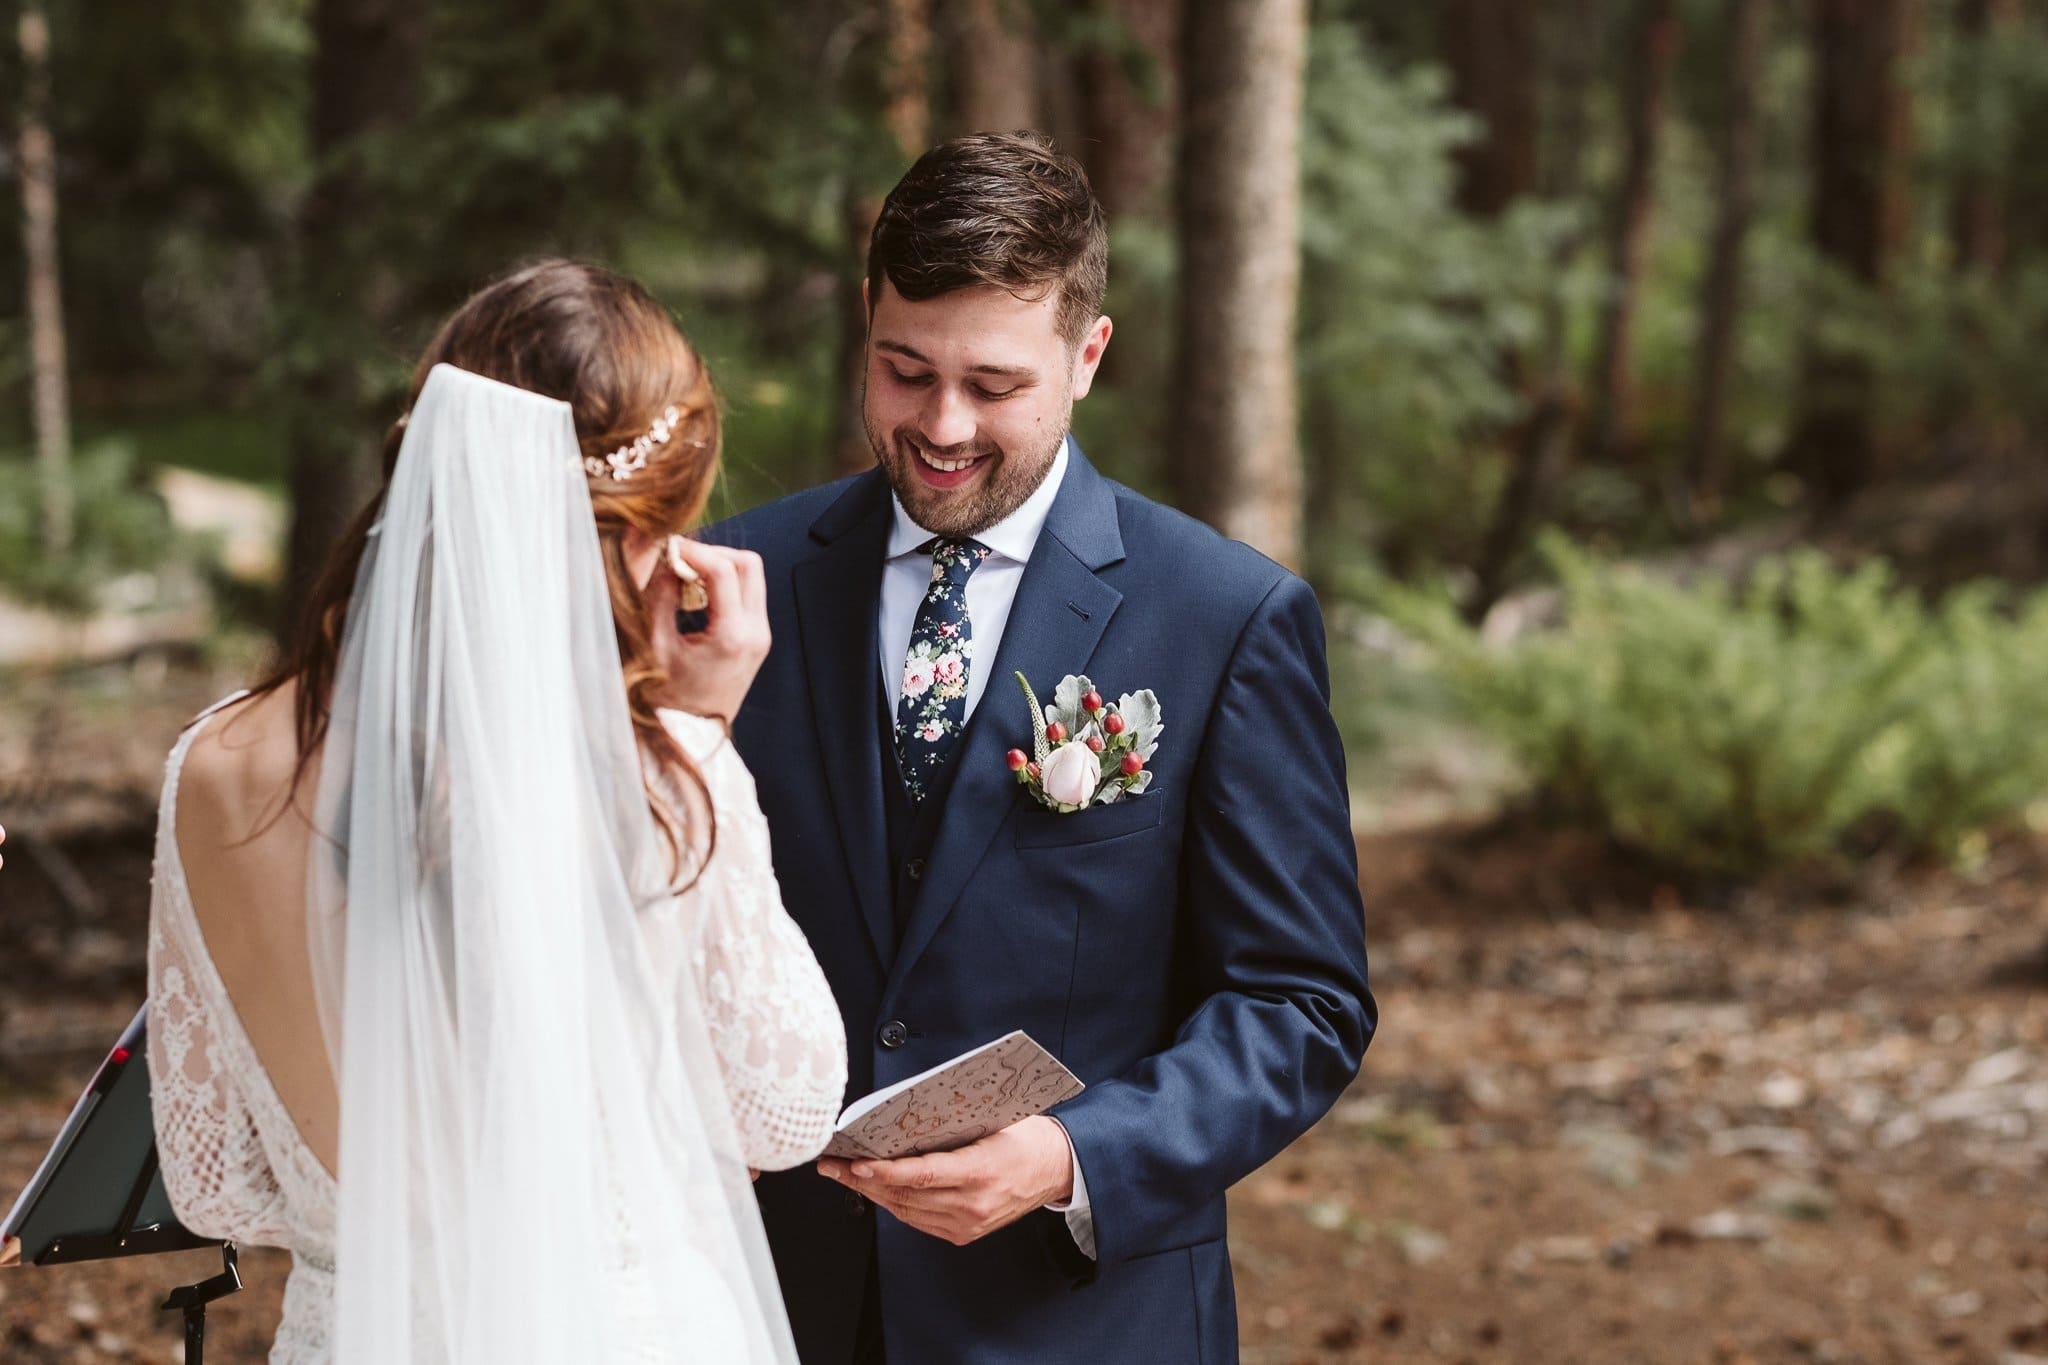 Rivertree Lodge wedding ceremony in Breckenridge, wedding in the woods of Colorado